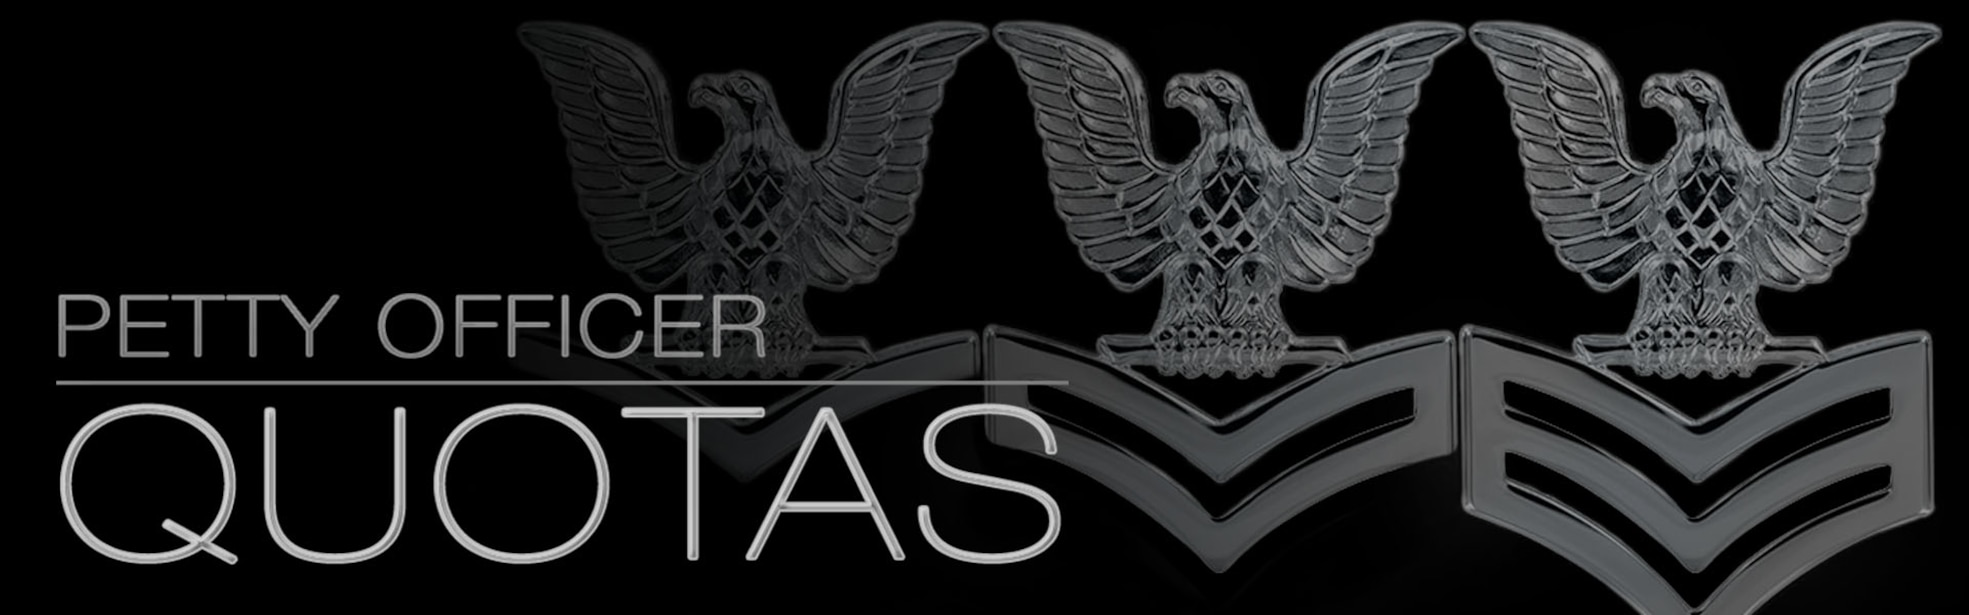 Black background with the words Petty Officer Quotas in white.